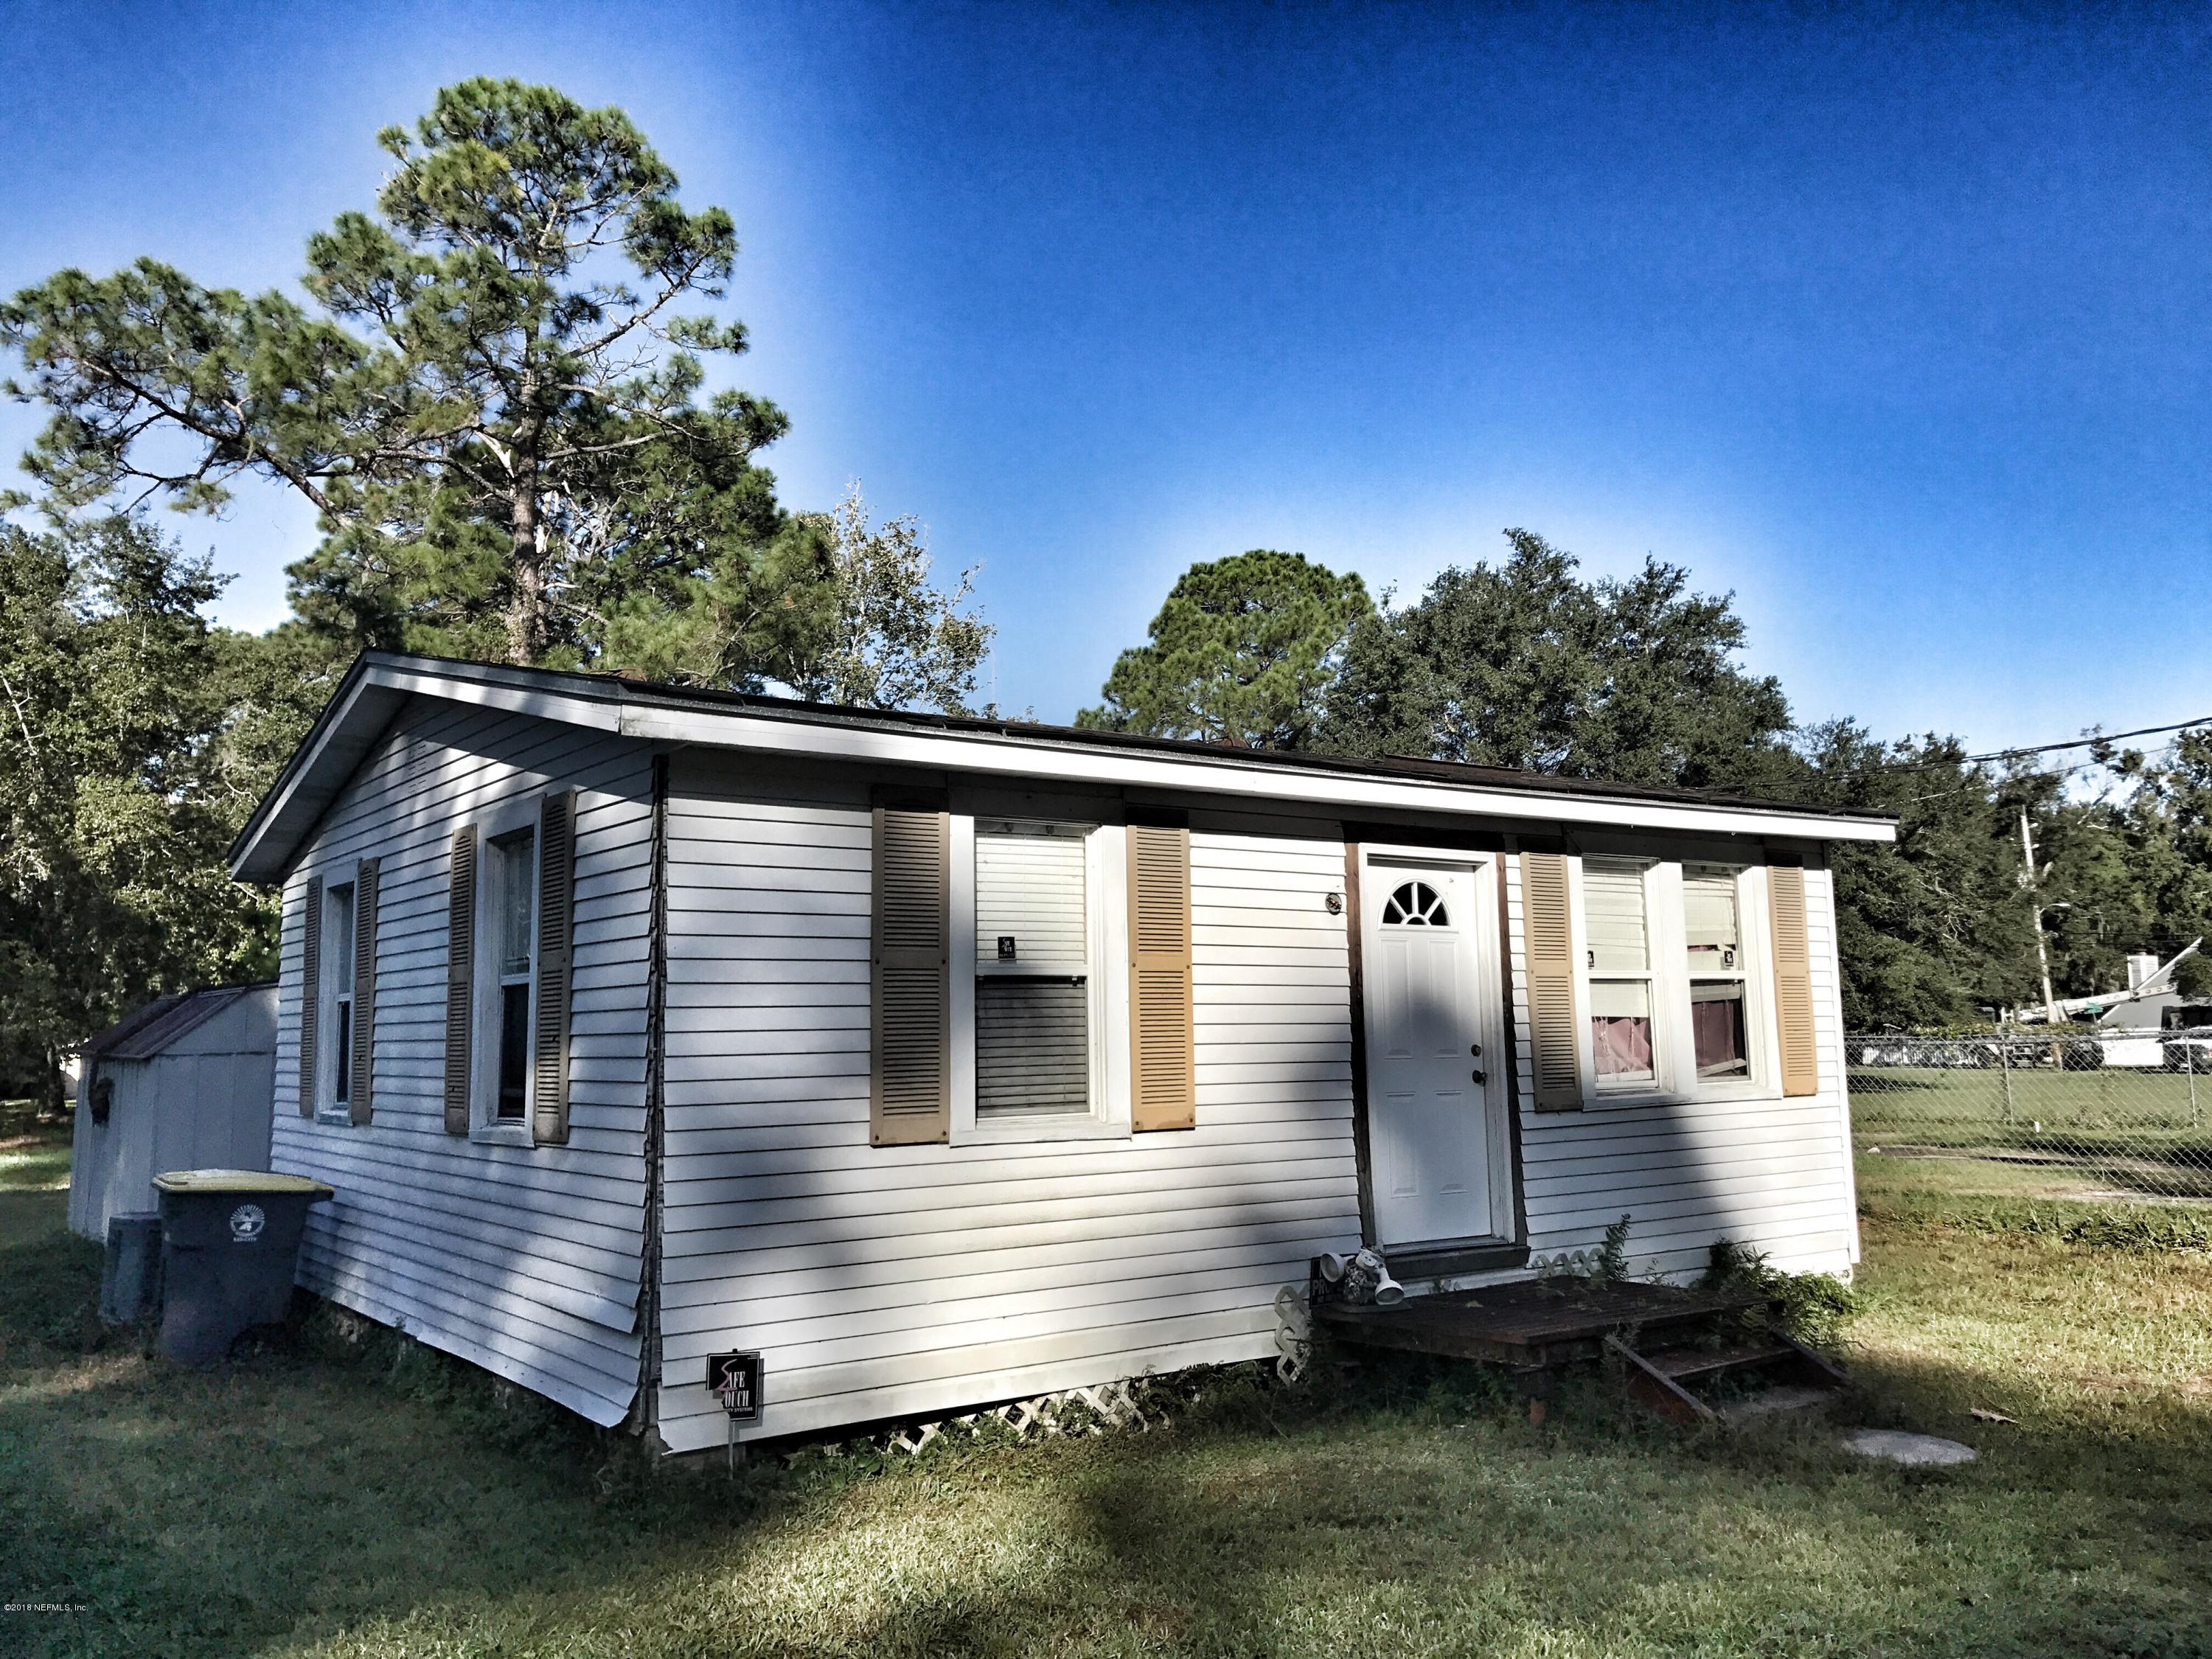 4632 CLAIRMONT, JACKSONVILLE, FLORIDA 32207, 2 Bedrooms Bedrooms, ,1 BathroomBathrooms,Residential - single family,For sale,CLAIRMONT,964898